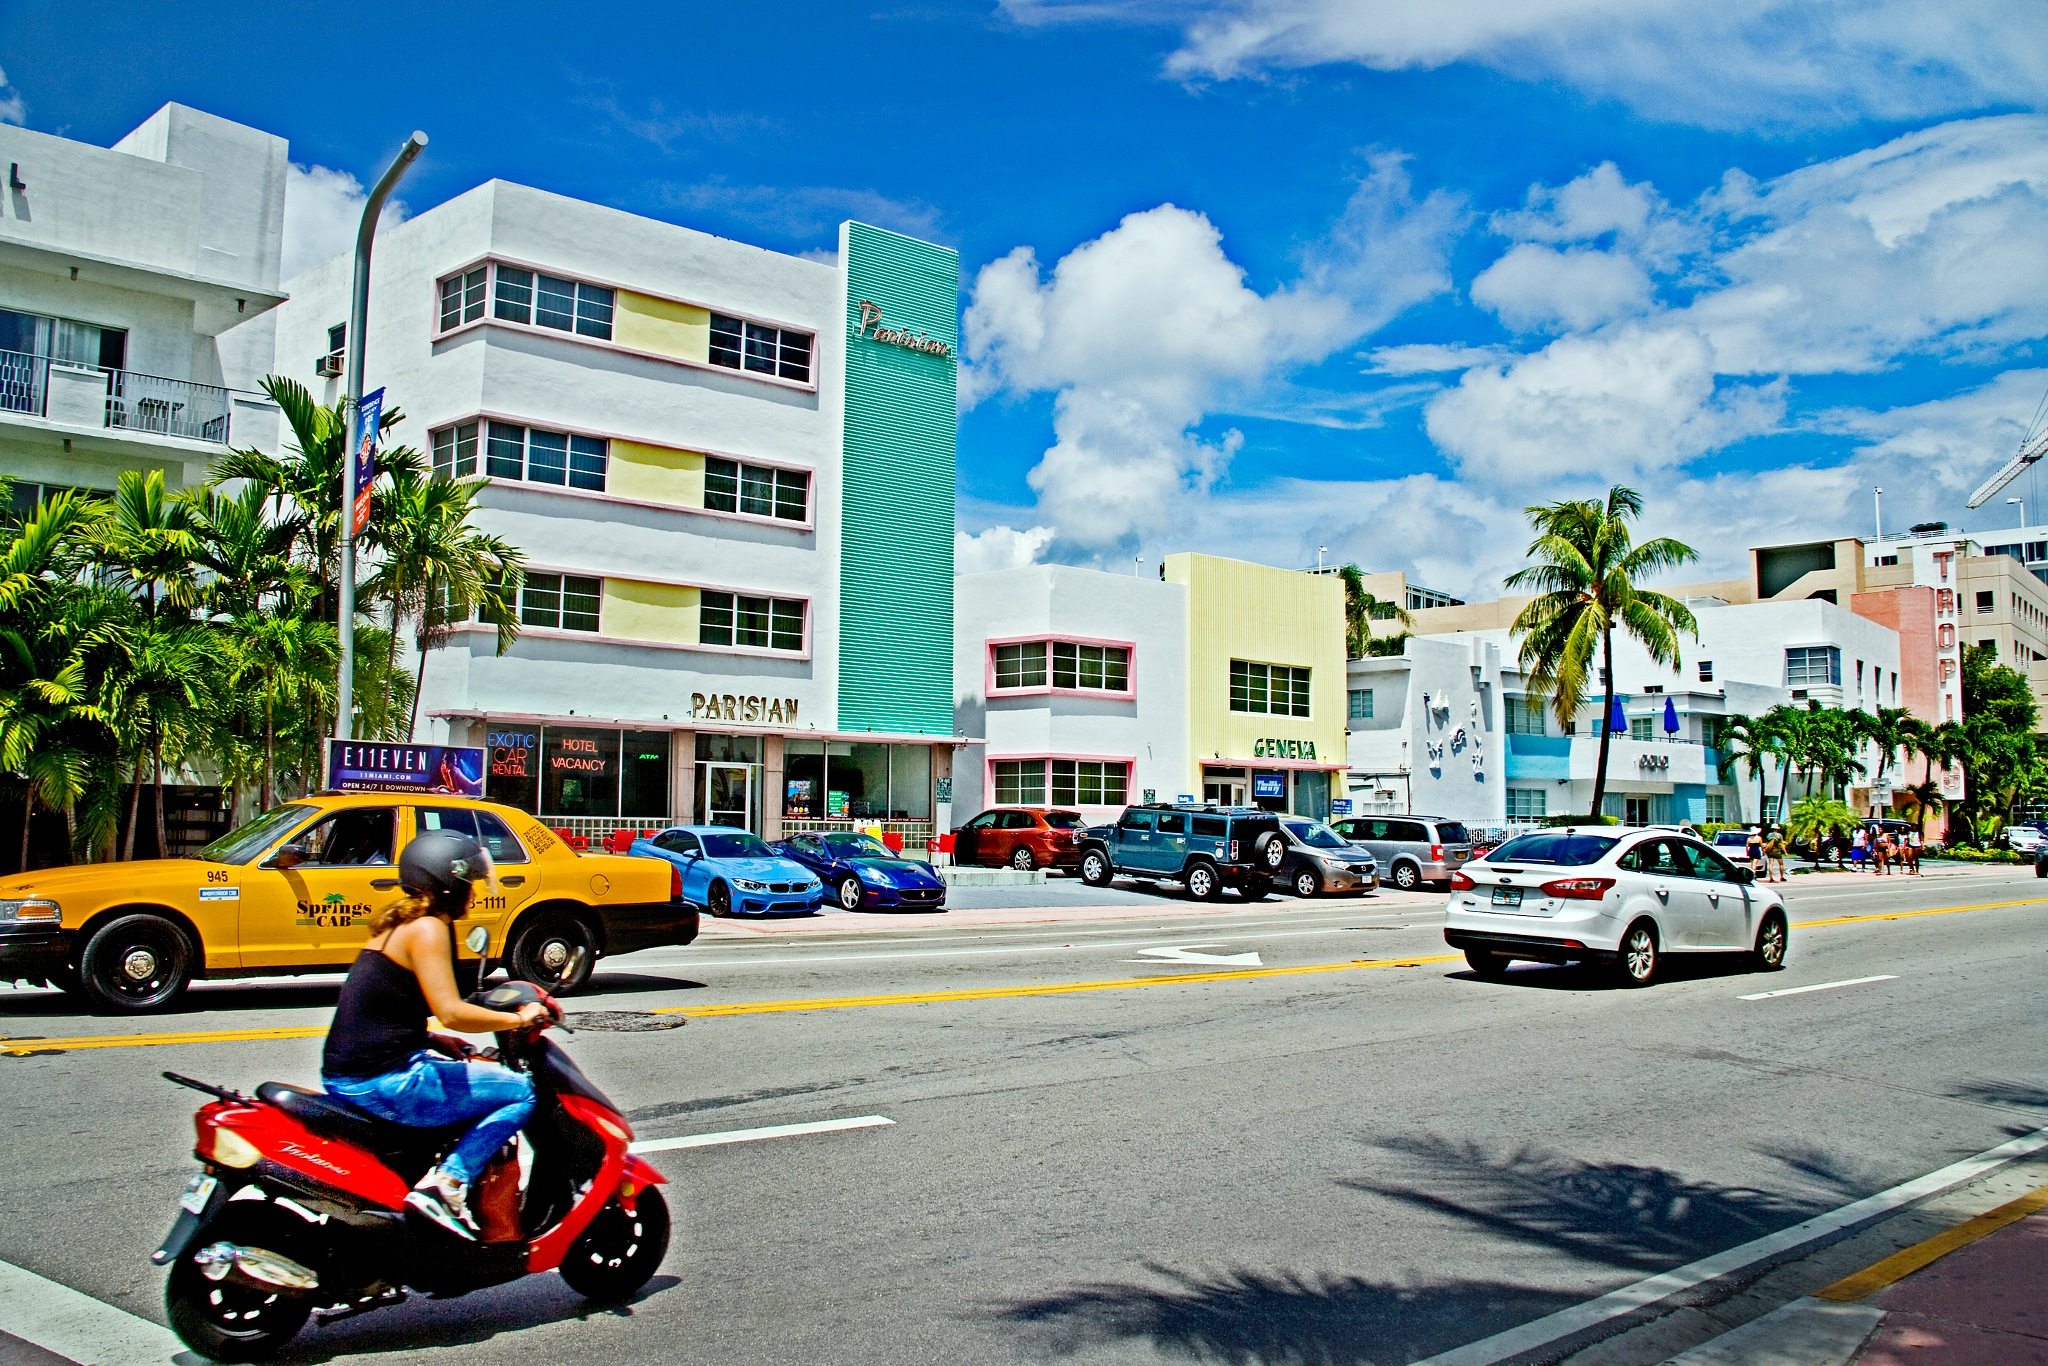 On The Streets of South Beach by TINIAN